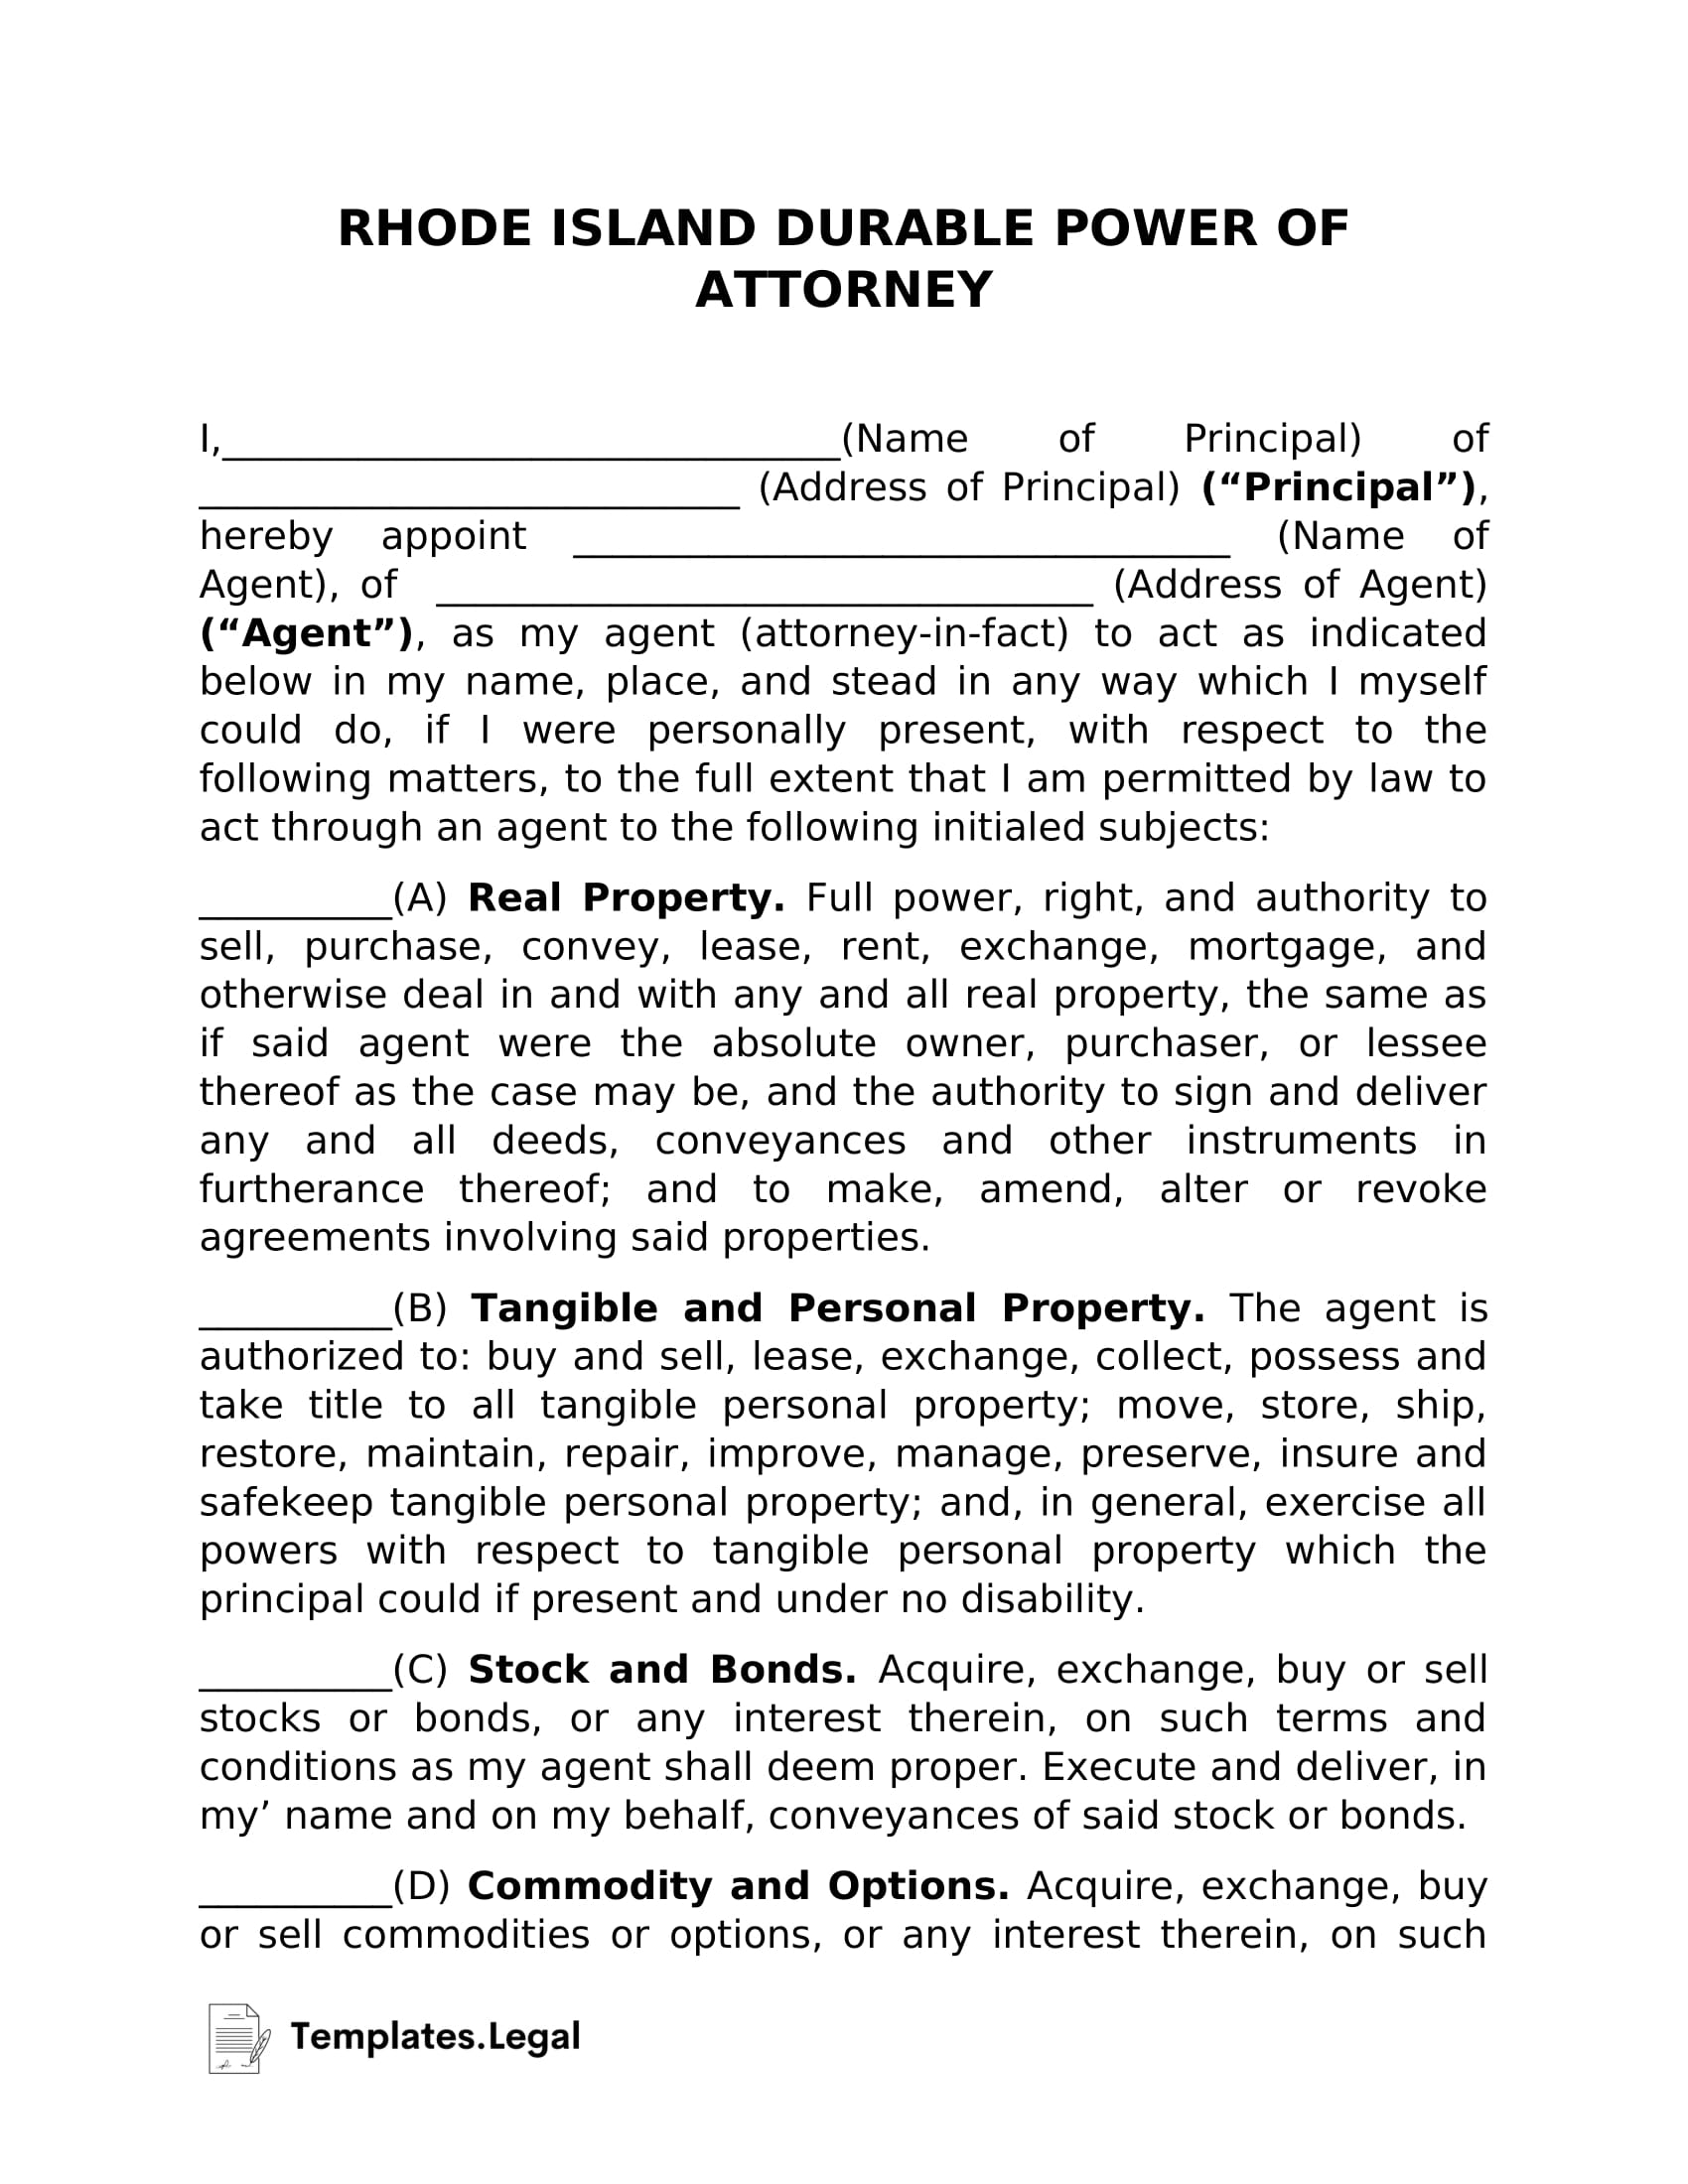 Rhode Island Durable Power of Attorney - Templates.Legal